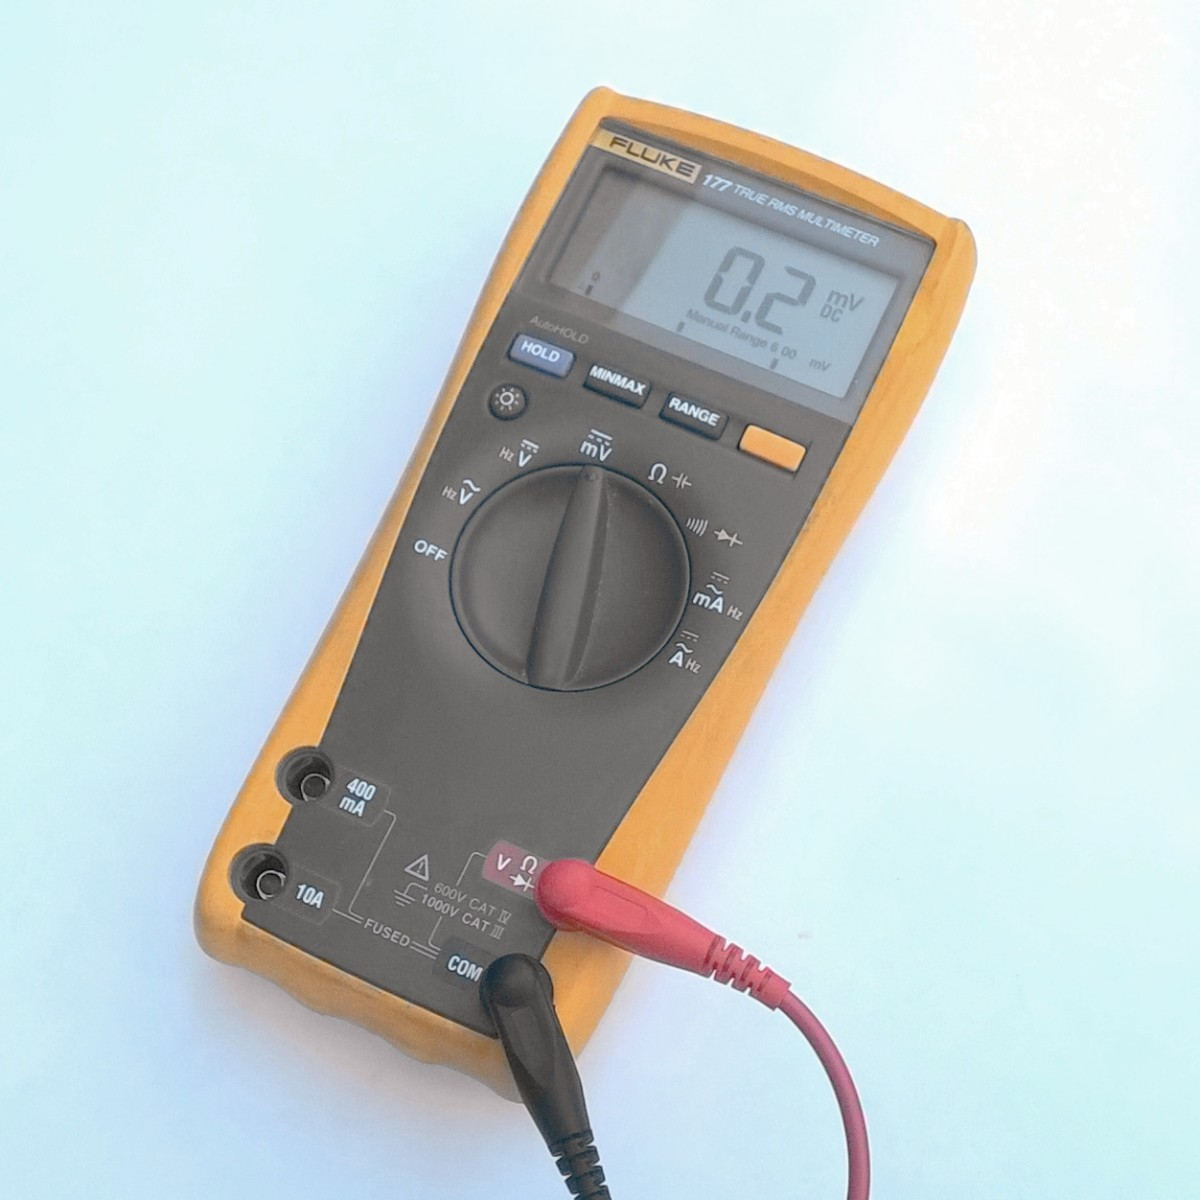 A professional model 177 Fluke multimeter with an accuracy of 0.09 % on DC volts.